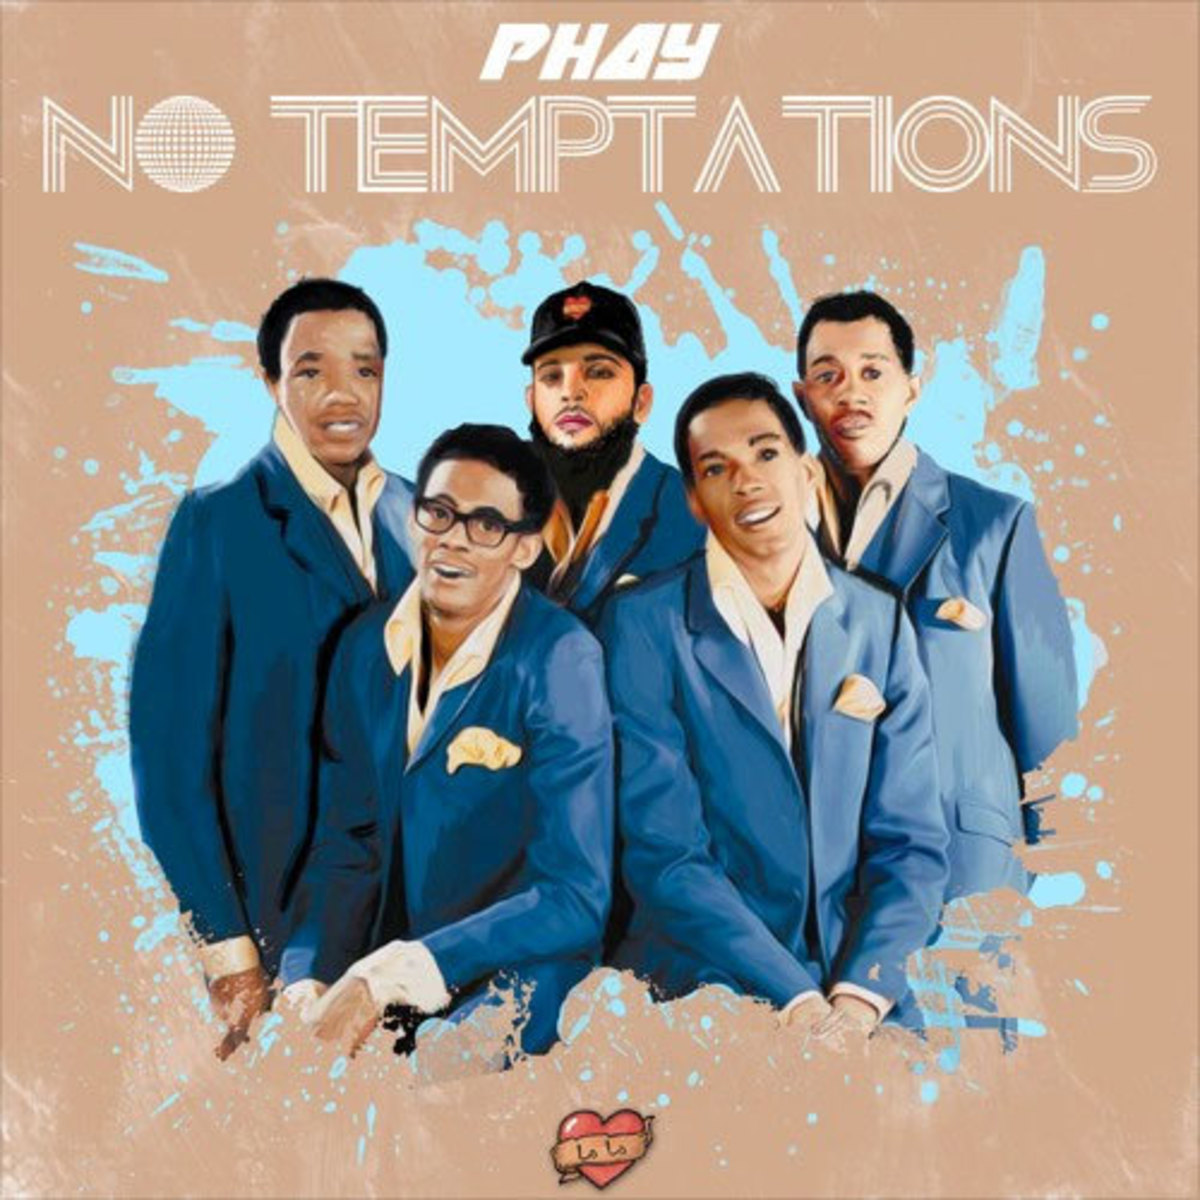 phay-no-temptations.jpg